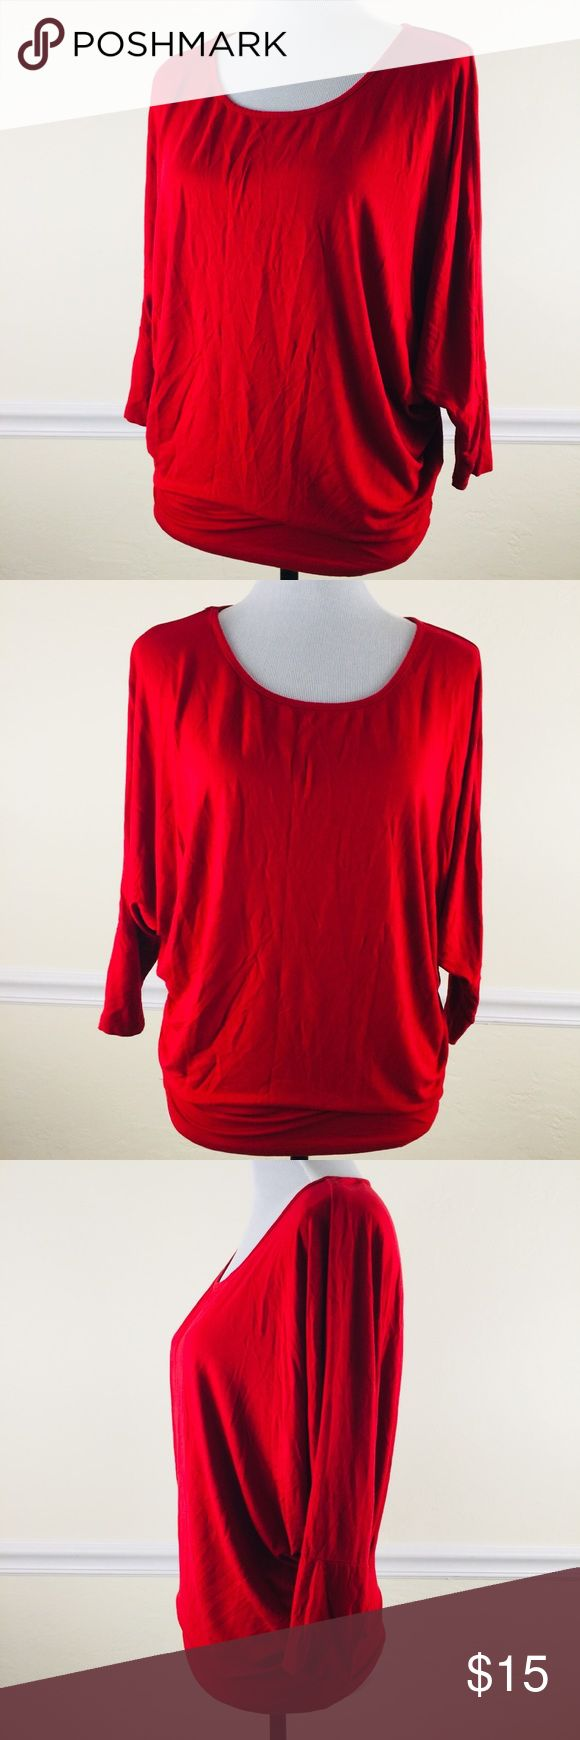 Miroa Red Top Batwing Sleeve Blouse Gently used and has no flaws  Size: Petite/Small miroa Tops Blouses